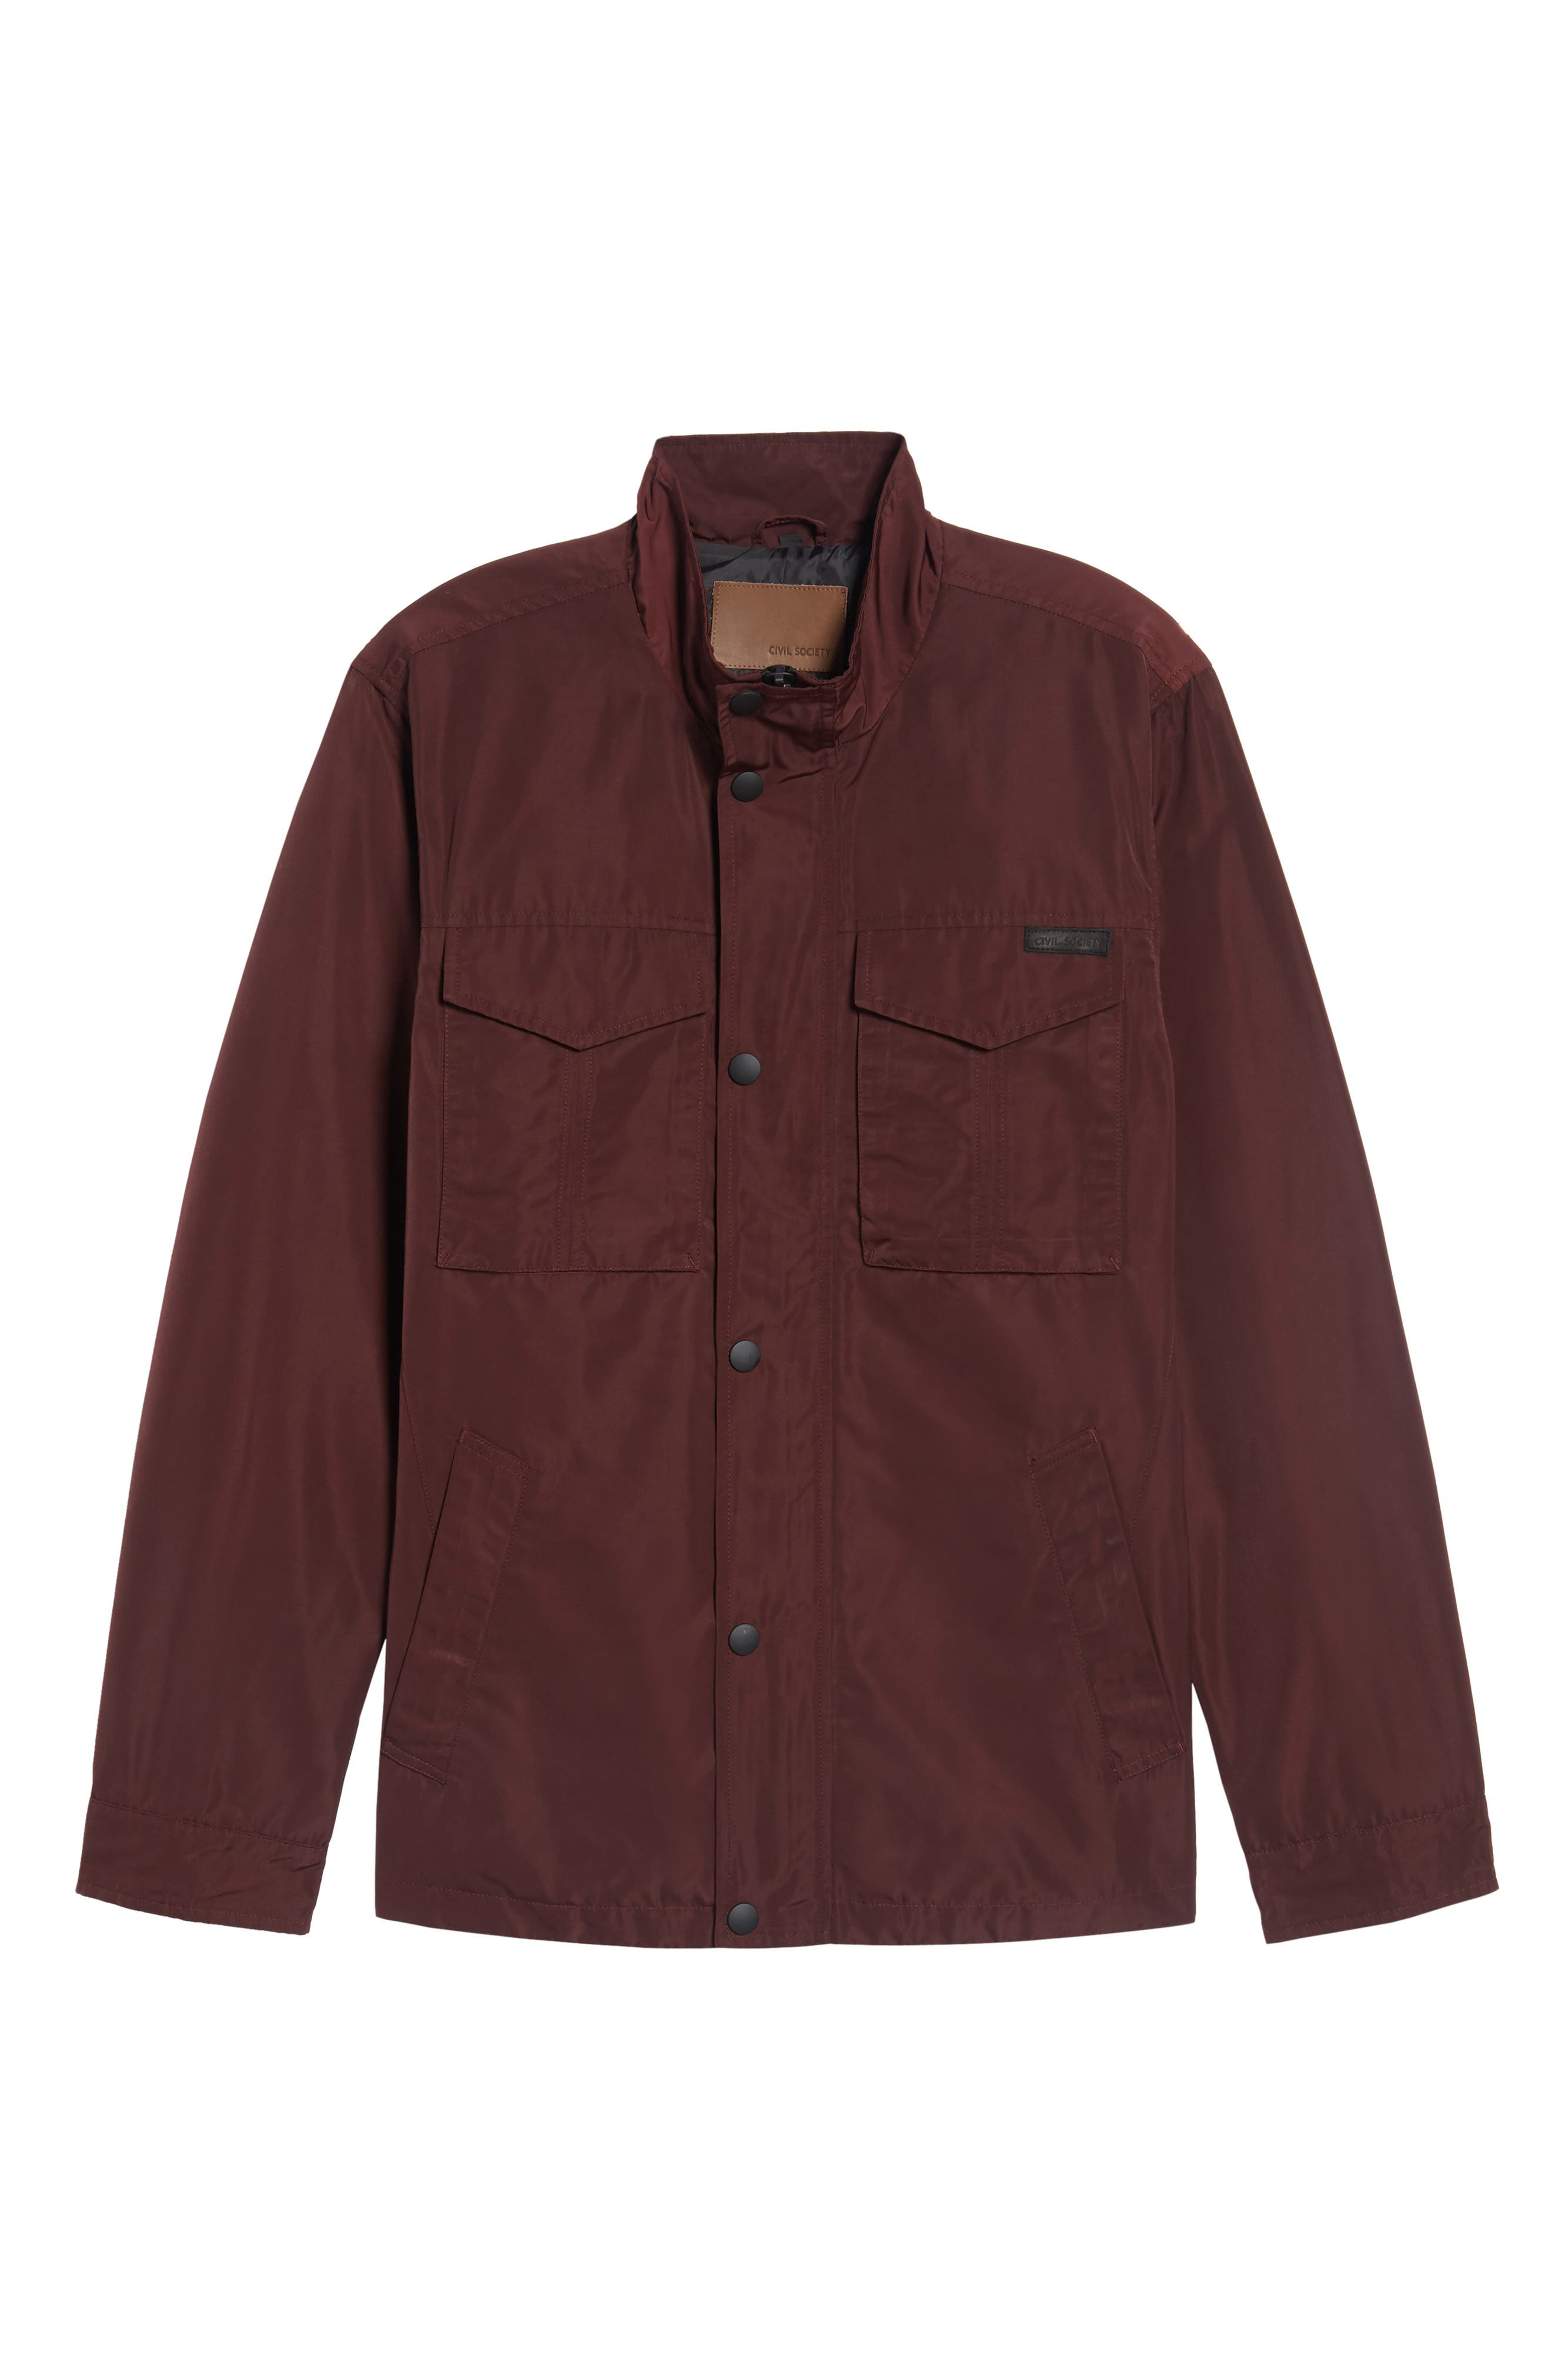 Dougie Waterproof Jacket,                             Main thumbnail 1, color,                             Mulberry